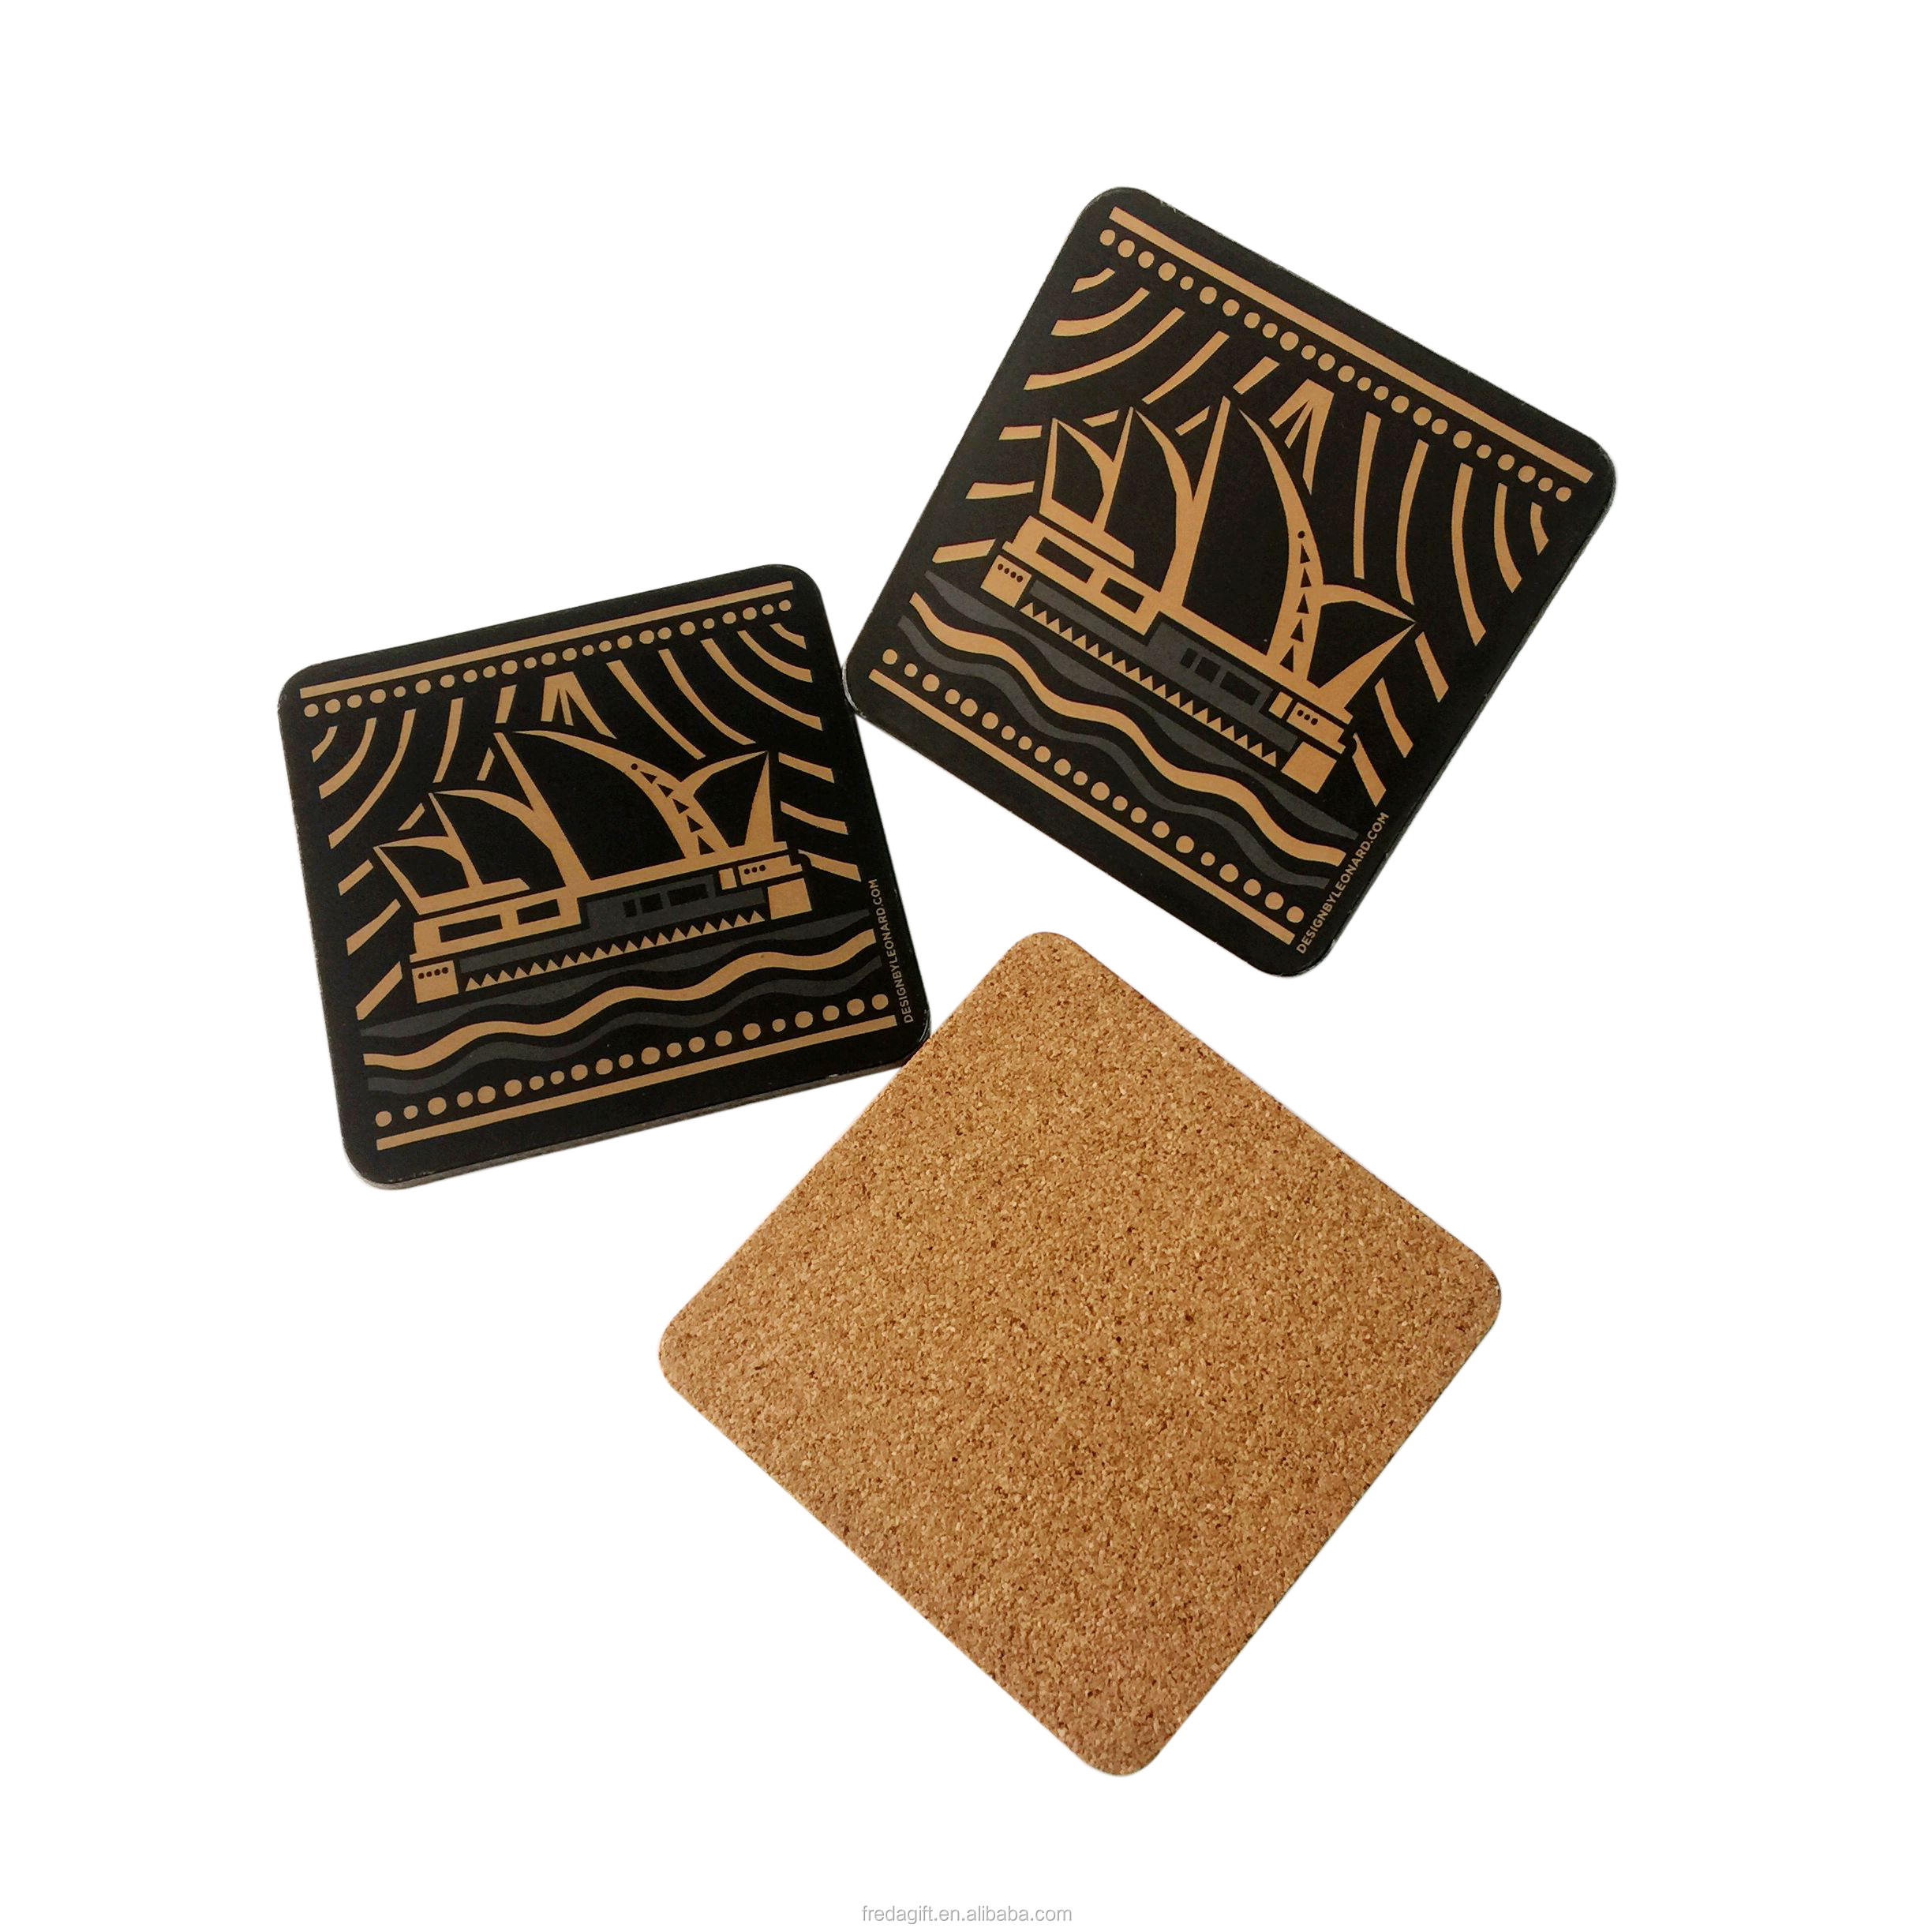 Custom home drink cup coasters gold Sydney Opera House printing MDF cork coasters